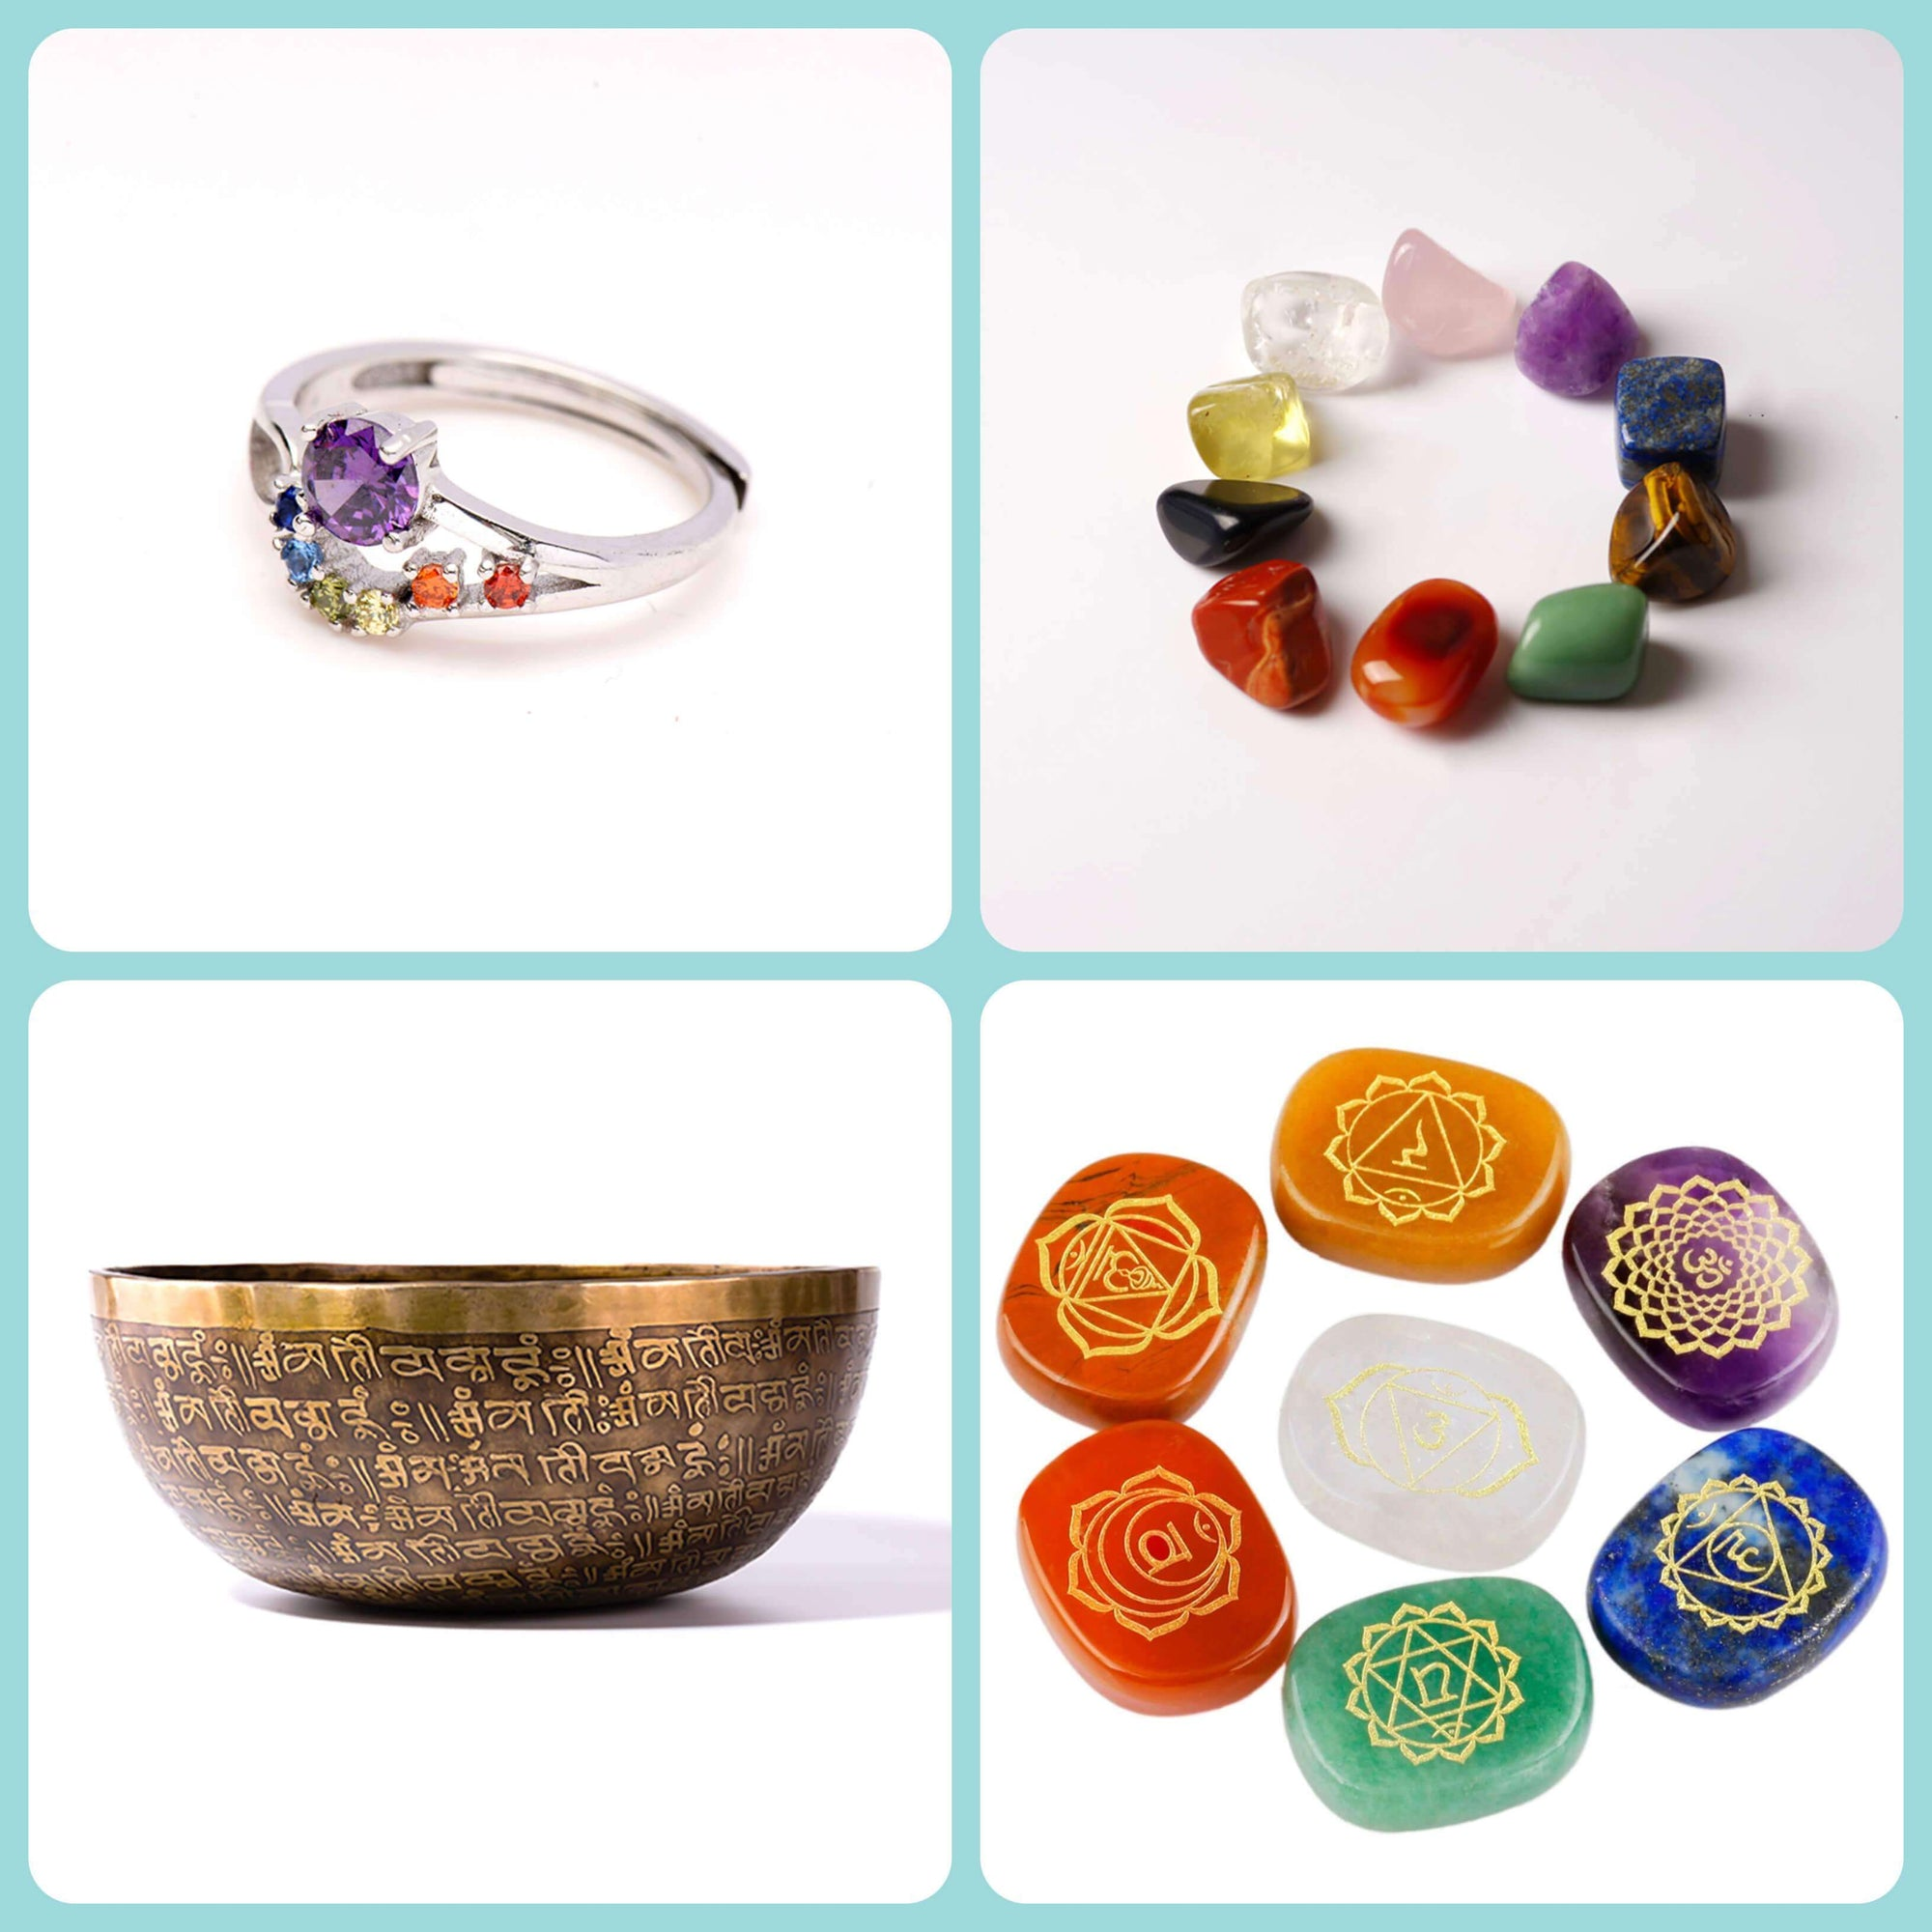 Chakra Reiki jewelry and items